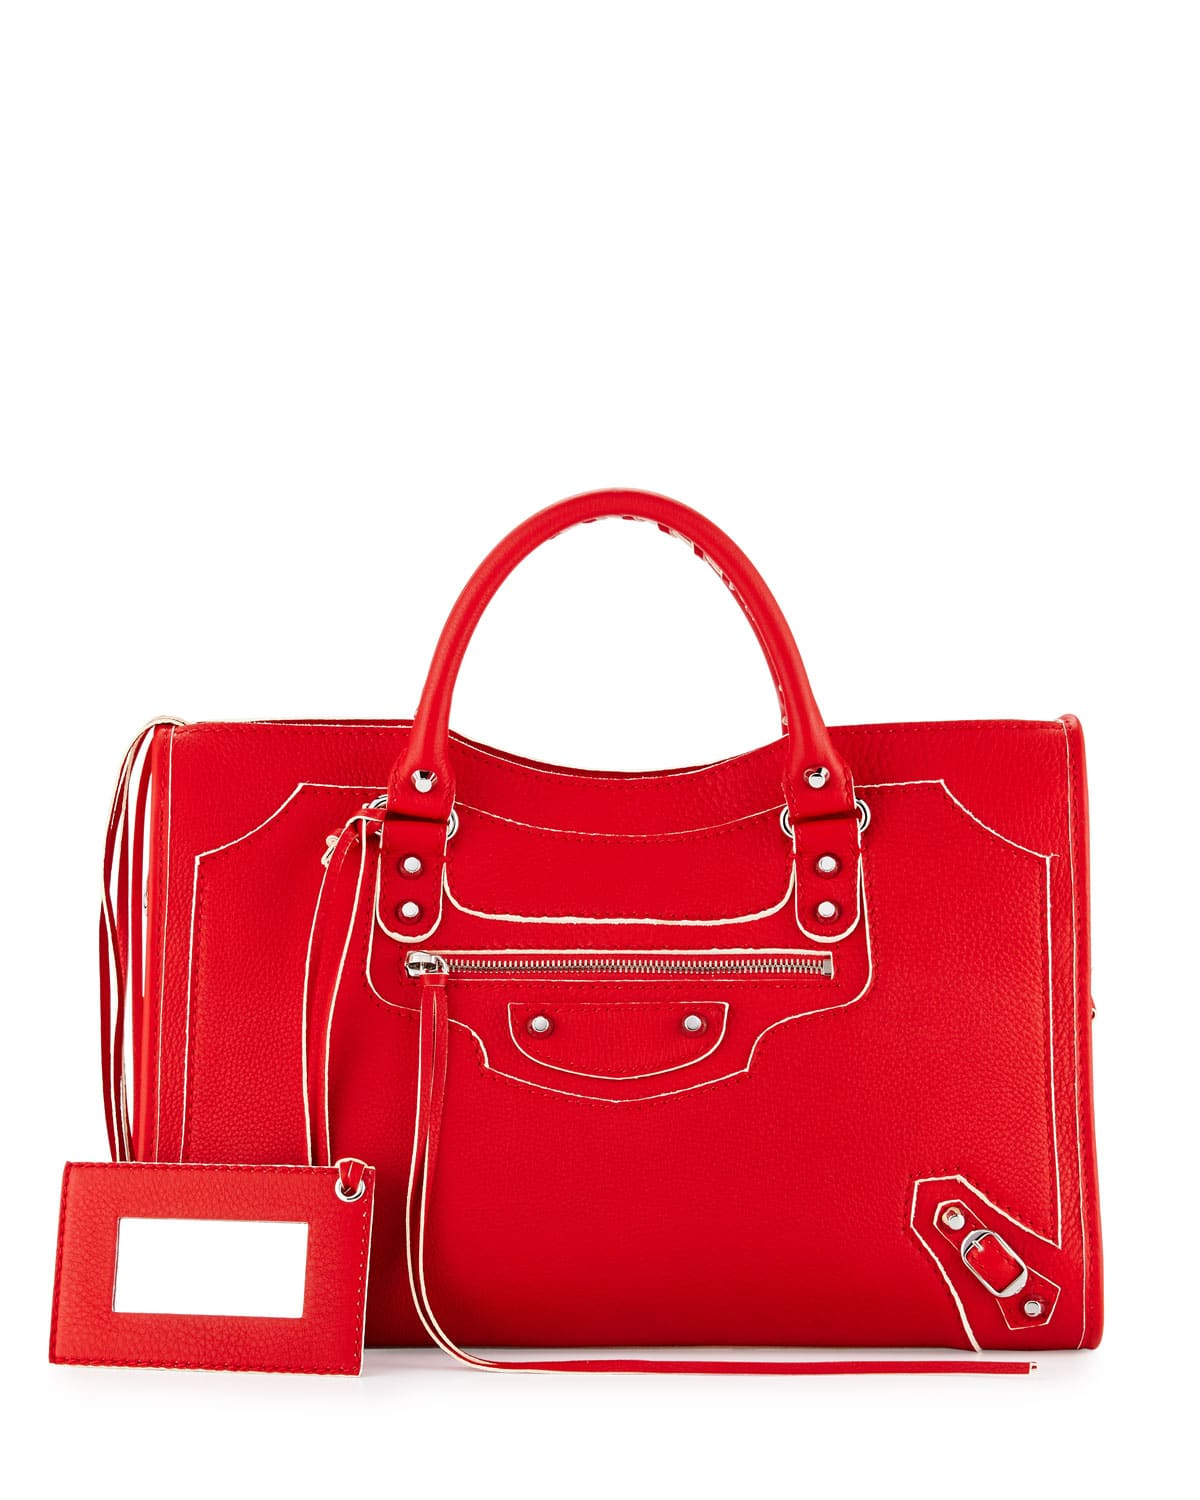 balenciaga bag price list reference guide spotted fashion. Black Bedroom Furniture Sets. Home Design Ideas